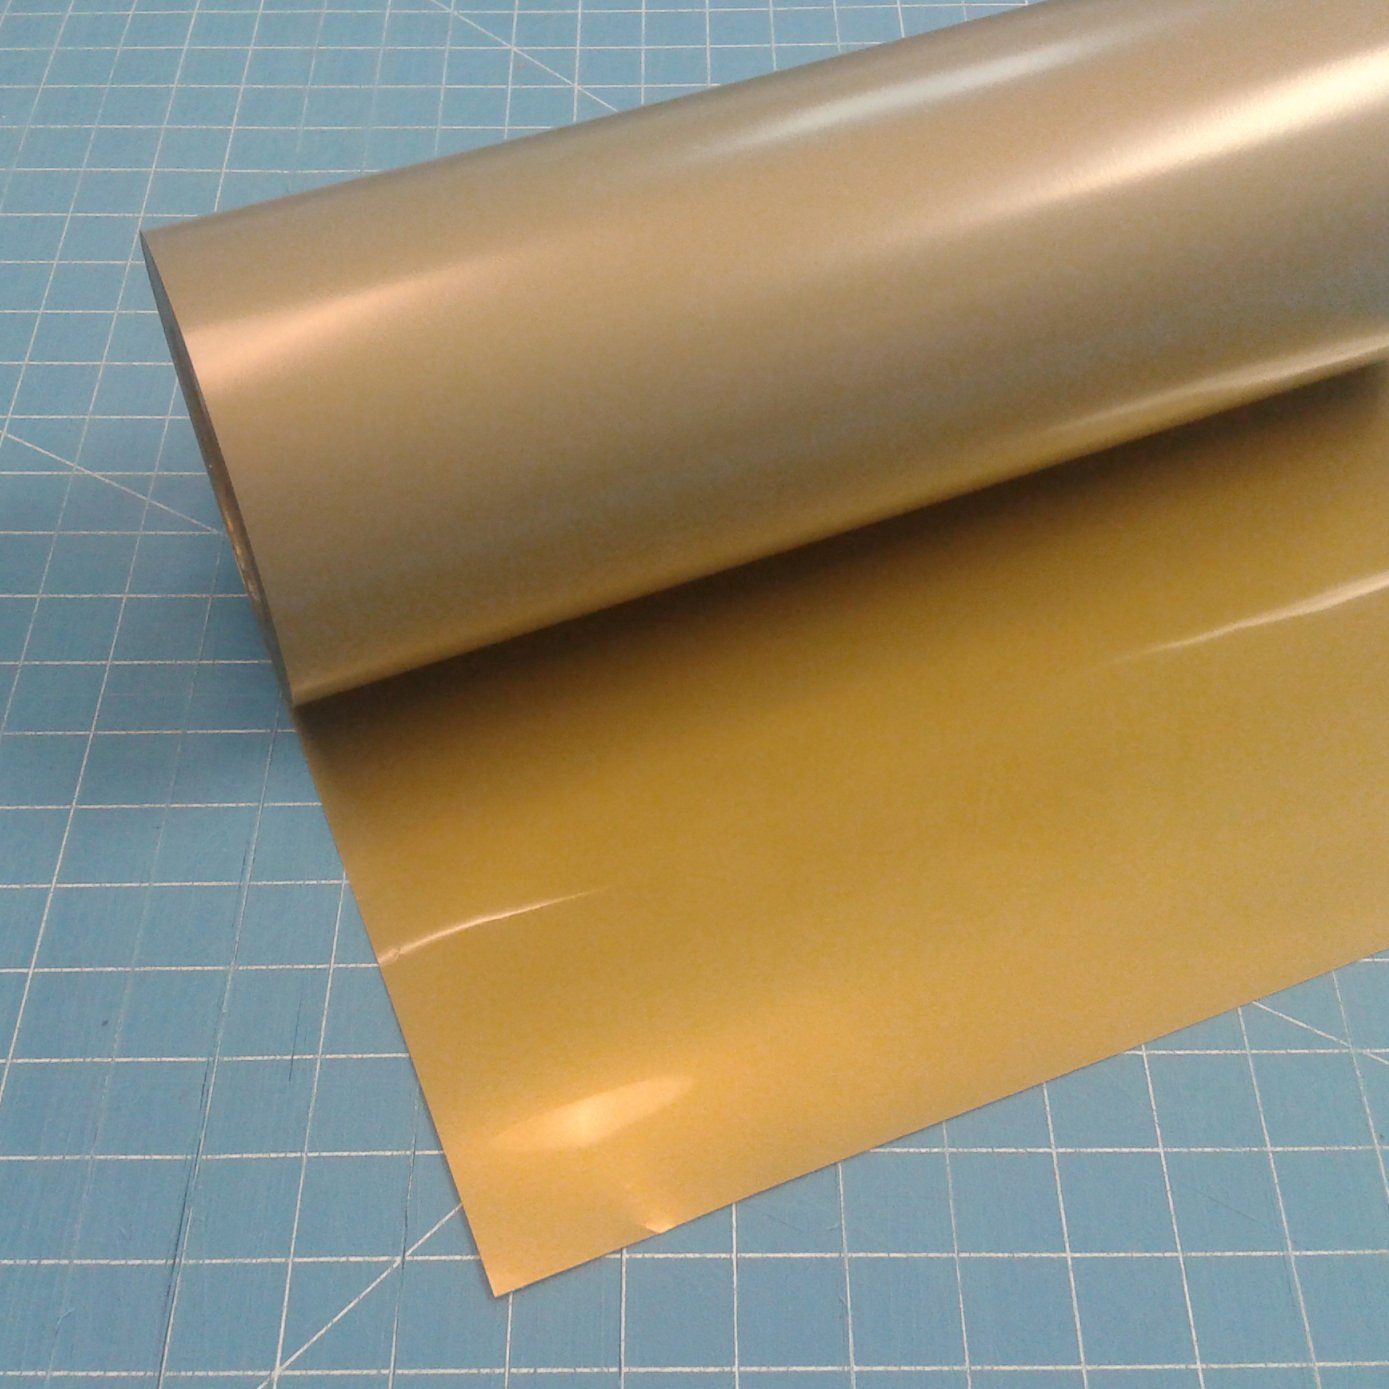 Siser Easyweed Gold 15 Quot X 5 Iron On Heat Transfer Vinyl